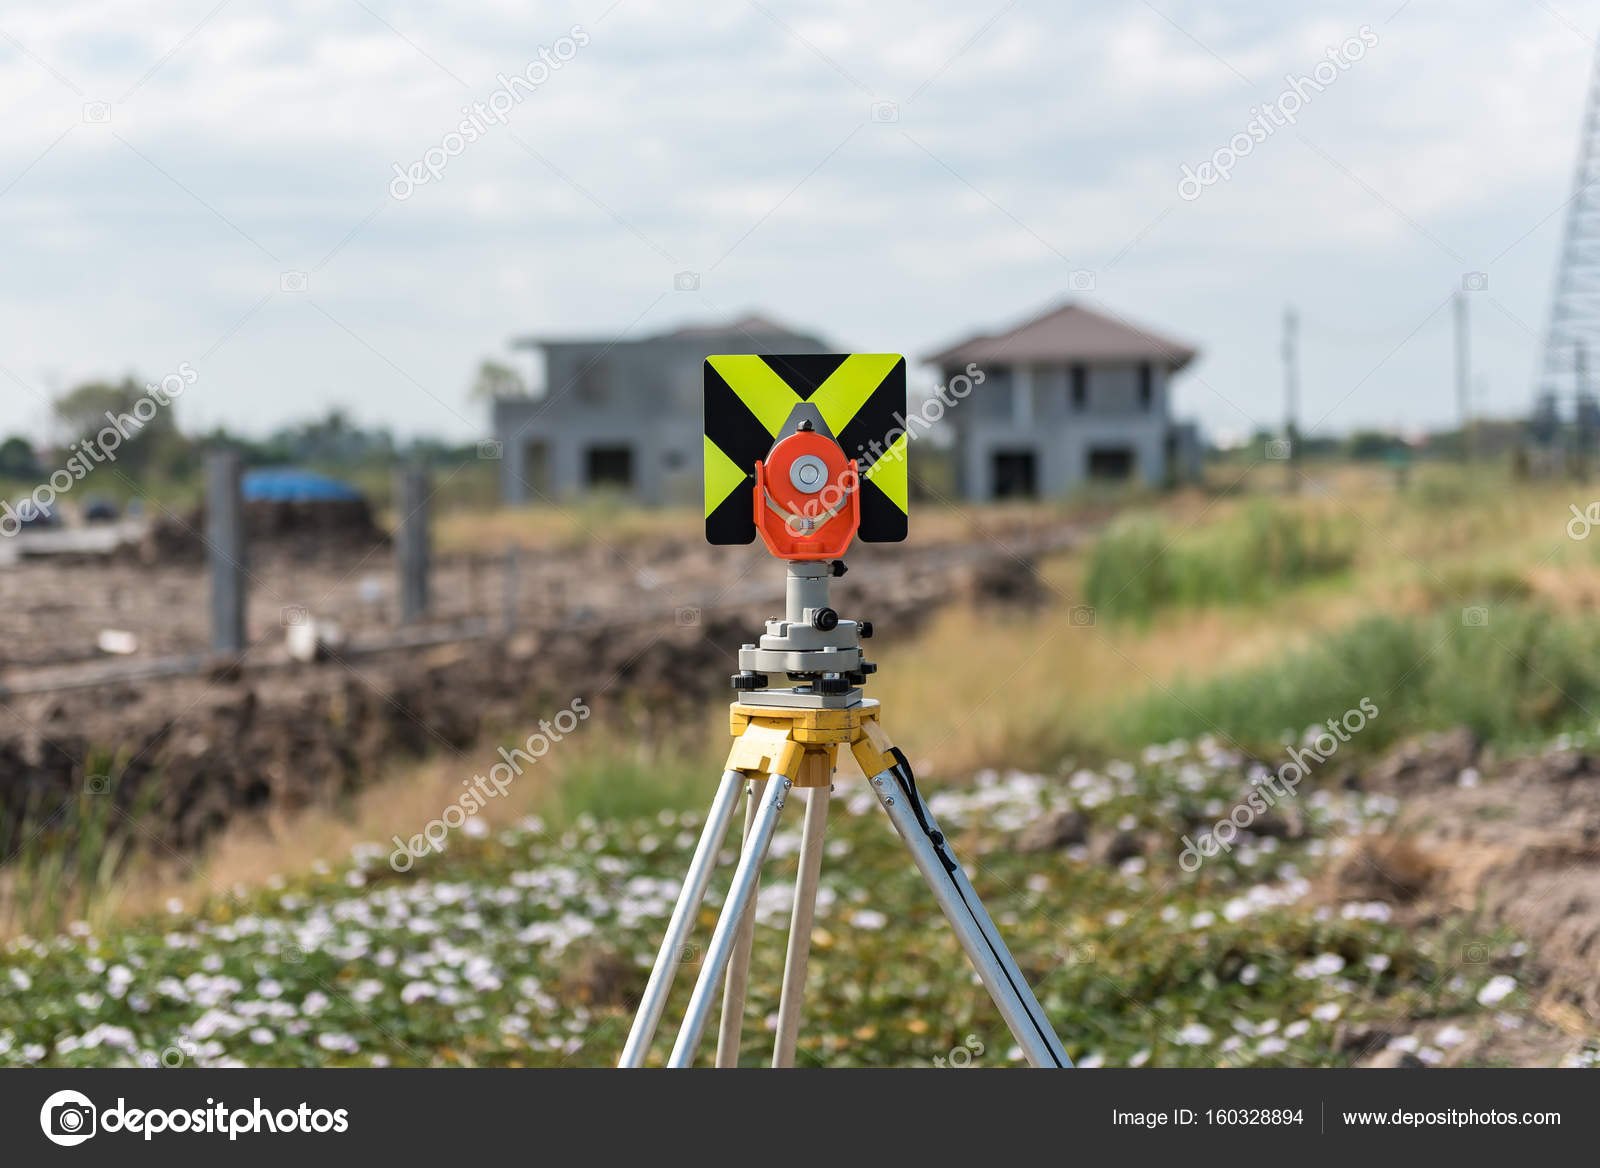 Civil Engineering And Construction Projects With Survey Equipment Tacheometer Or Theodolite Outdoors At Site Photo By Khongkitwiriyachan